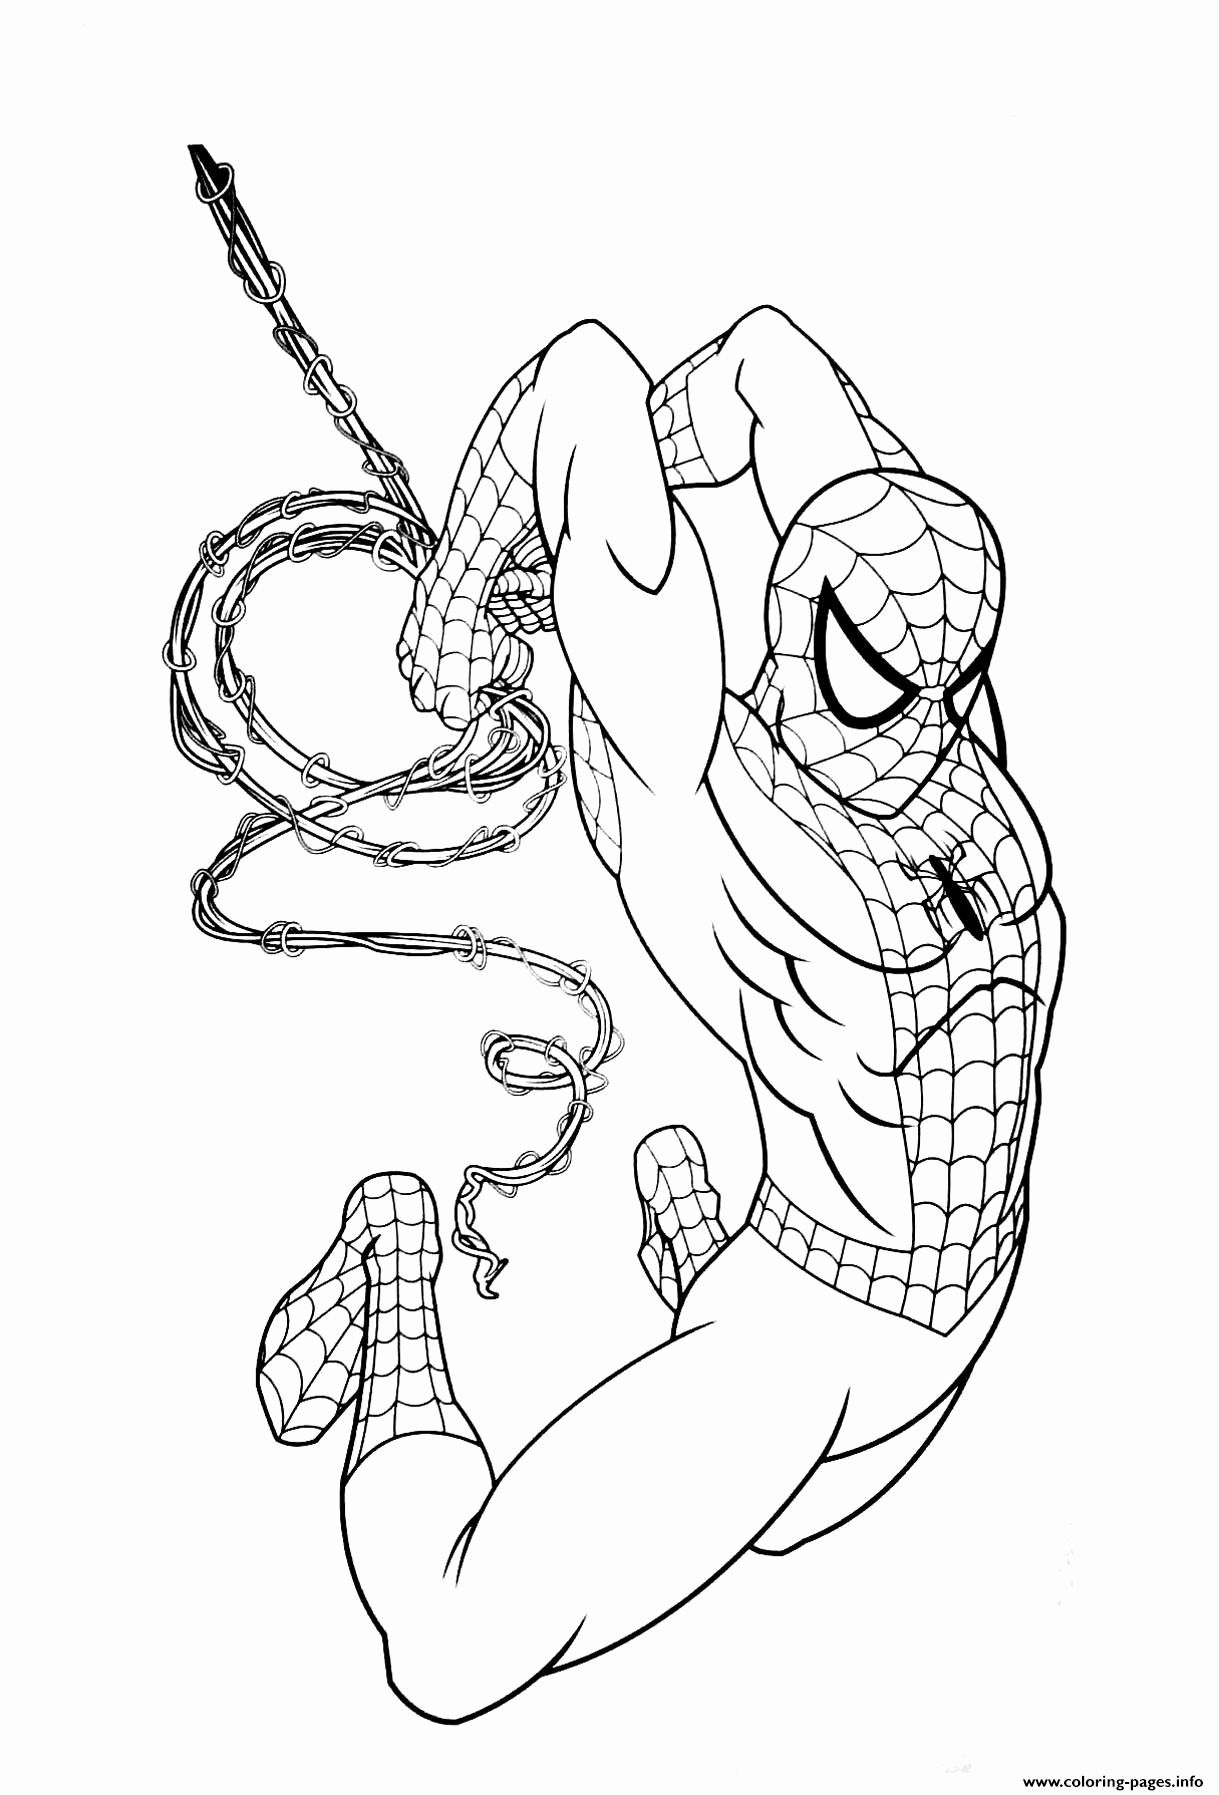 Avengers Coloring Pages For Kids Easy In 2020 Superhero Coloring Superhero Coloring Pages Avengers Coloring